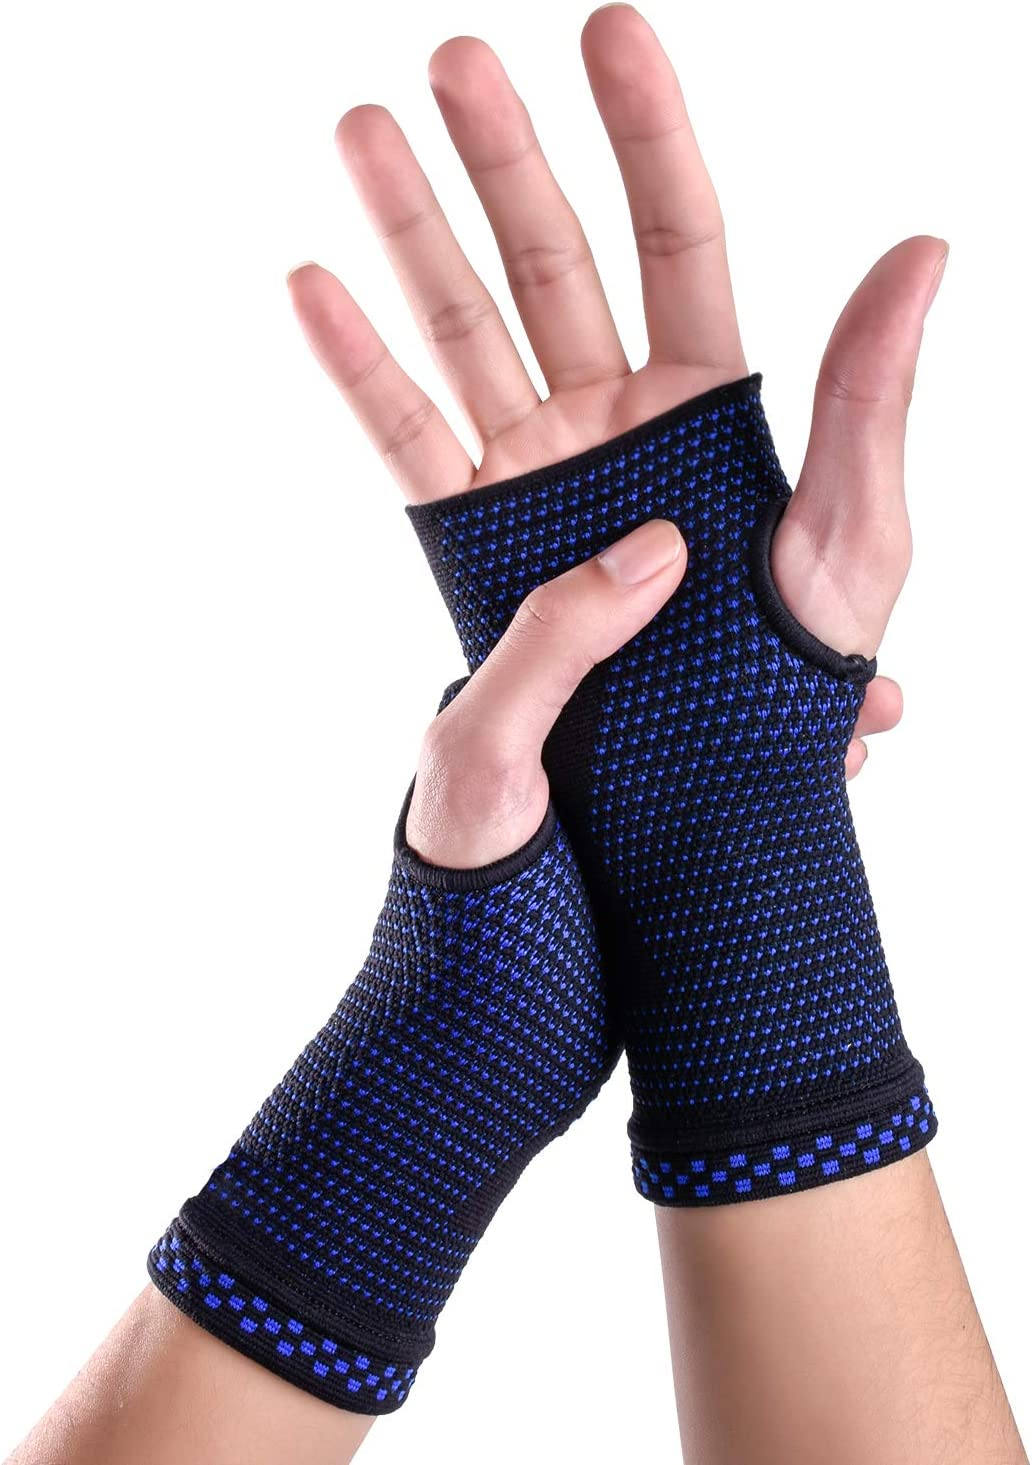 Compression Wrist Sleeves Medical Grade Wrist Band Brace Support Recovery Brace Wrap Sleeve 2 Sleeves Woman Man Unisex for Arthritis Carpal Tunnel Sports Muscle Joint Pain